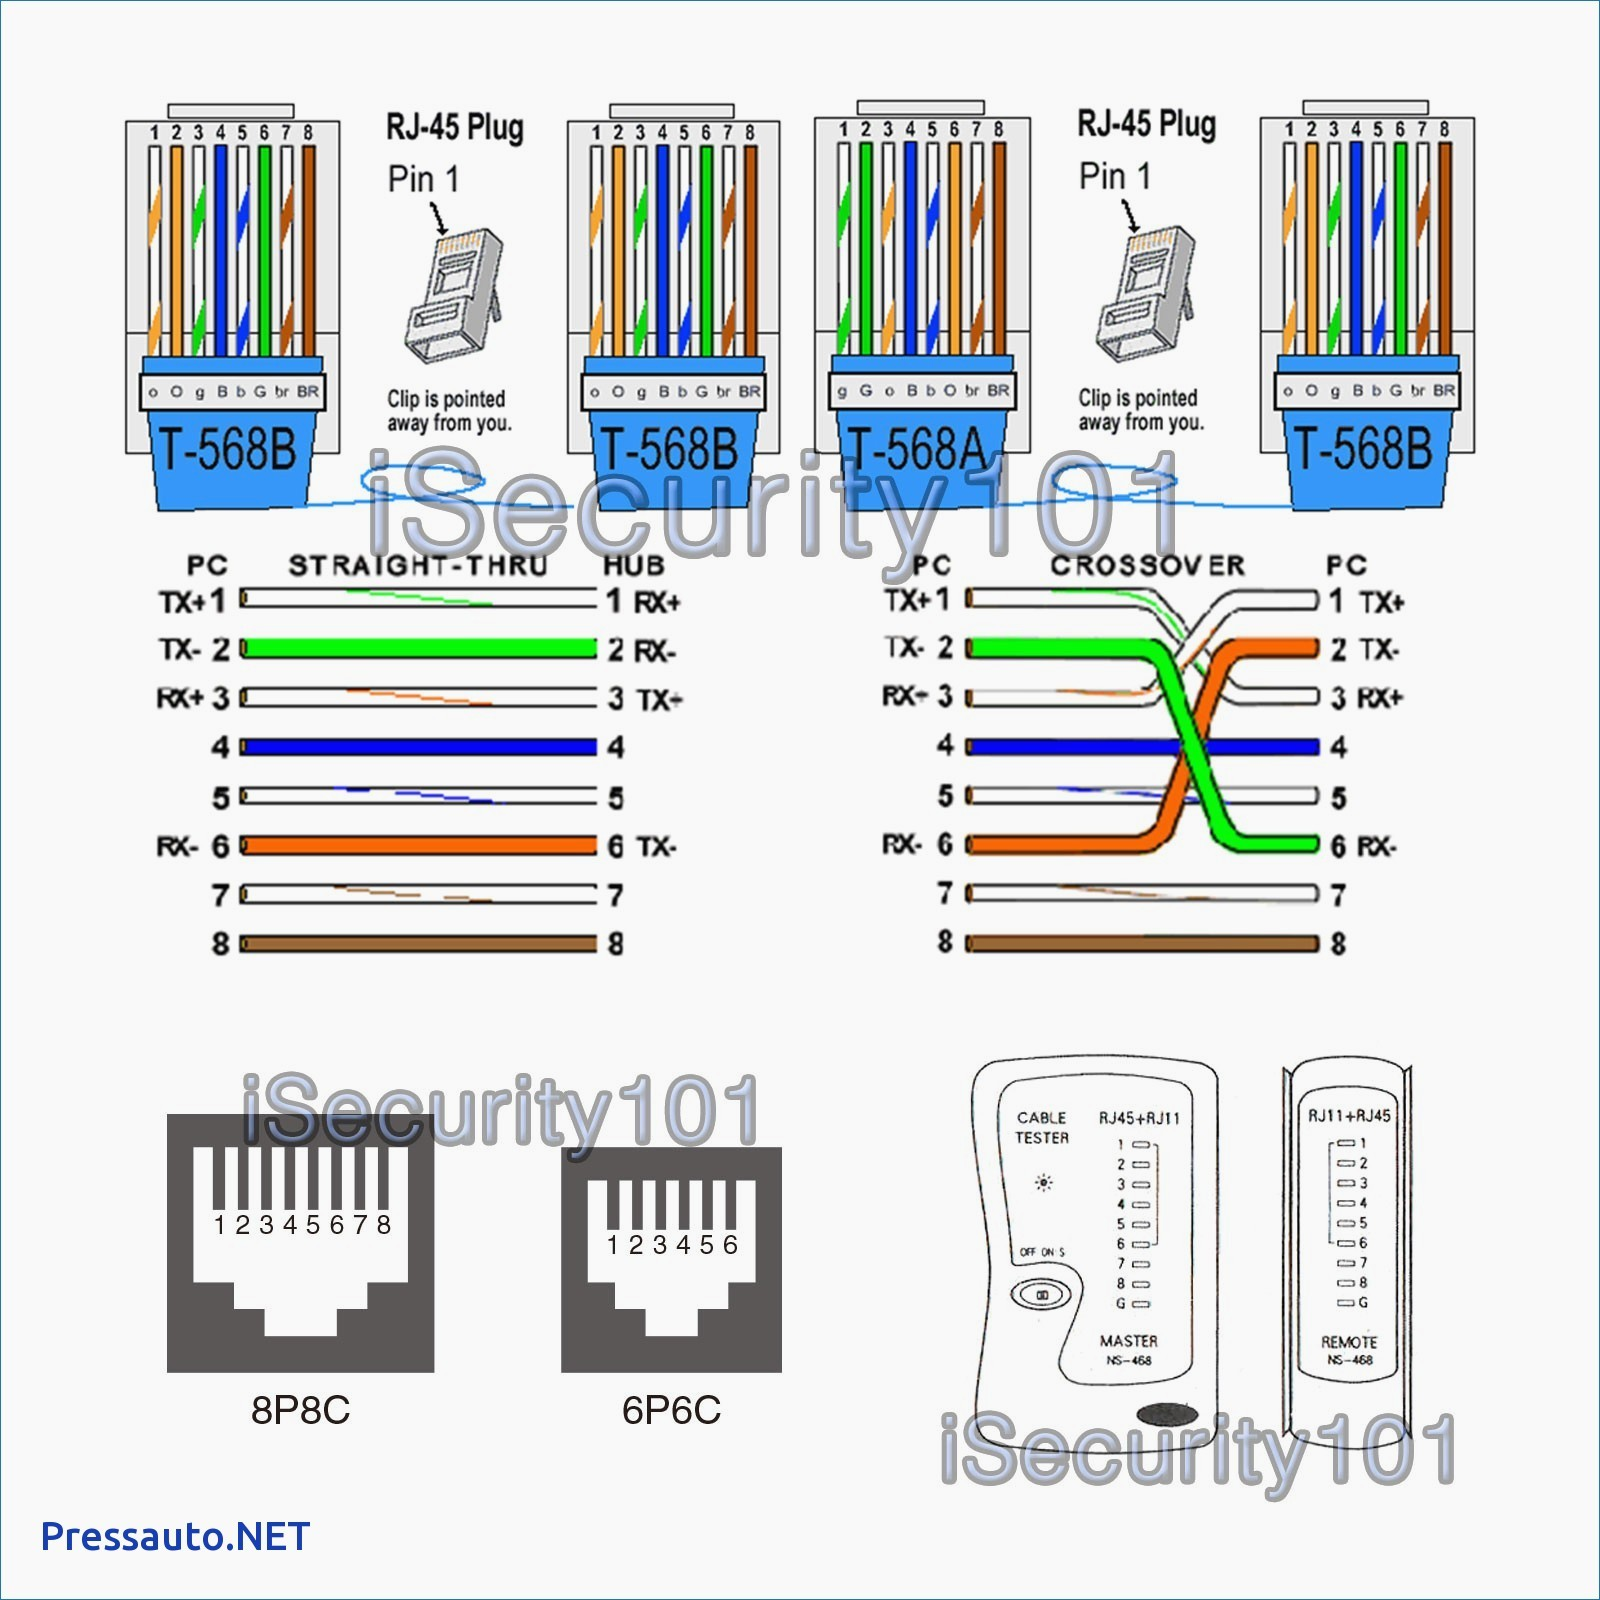 Cat5 Connector Wiring Diagram Cat 5 B Wiring Diagram Wiring solutions Of Cat5 Connector Wiring Diagram